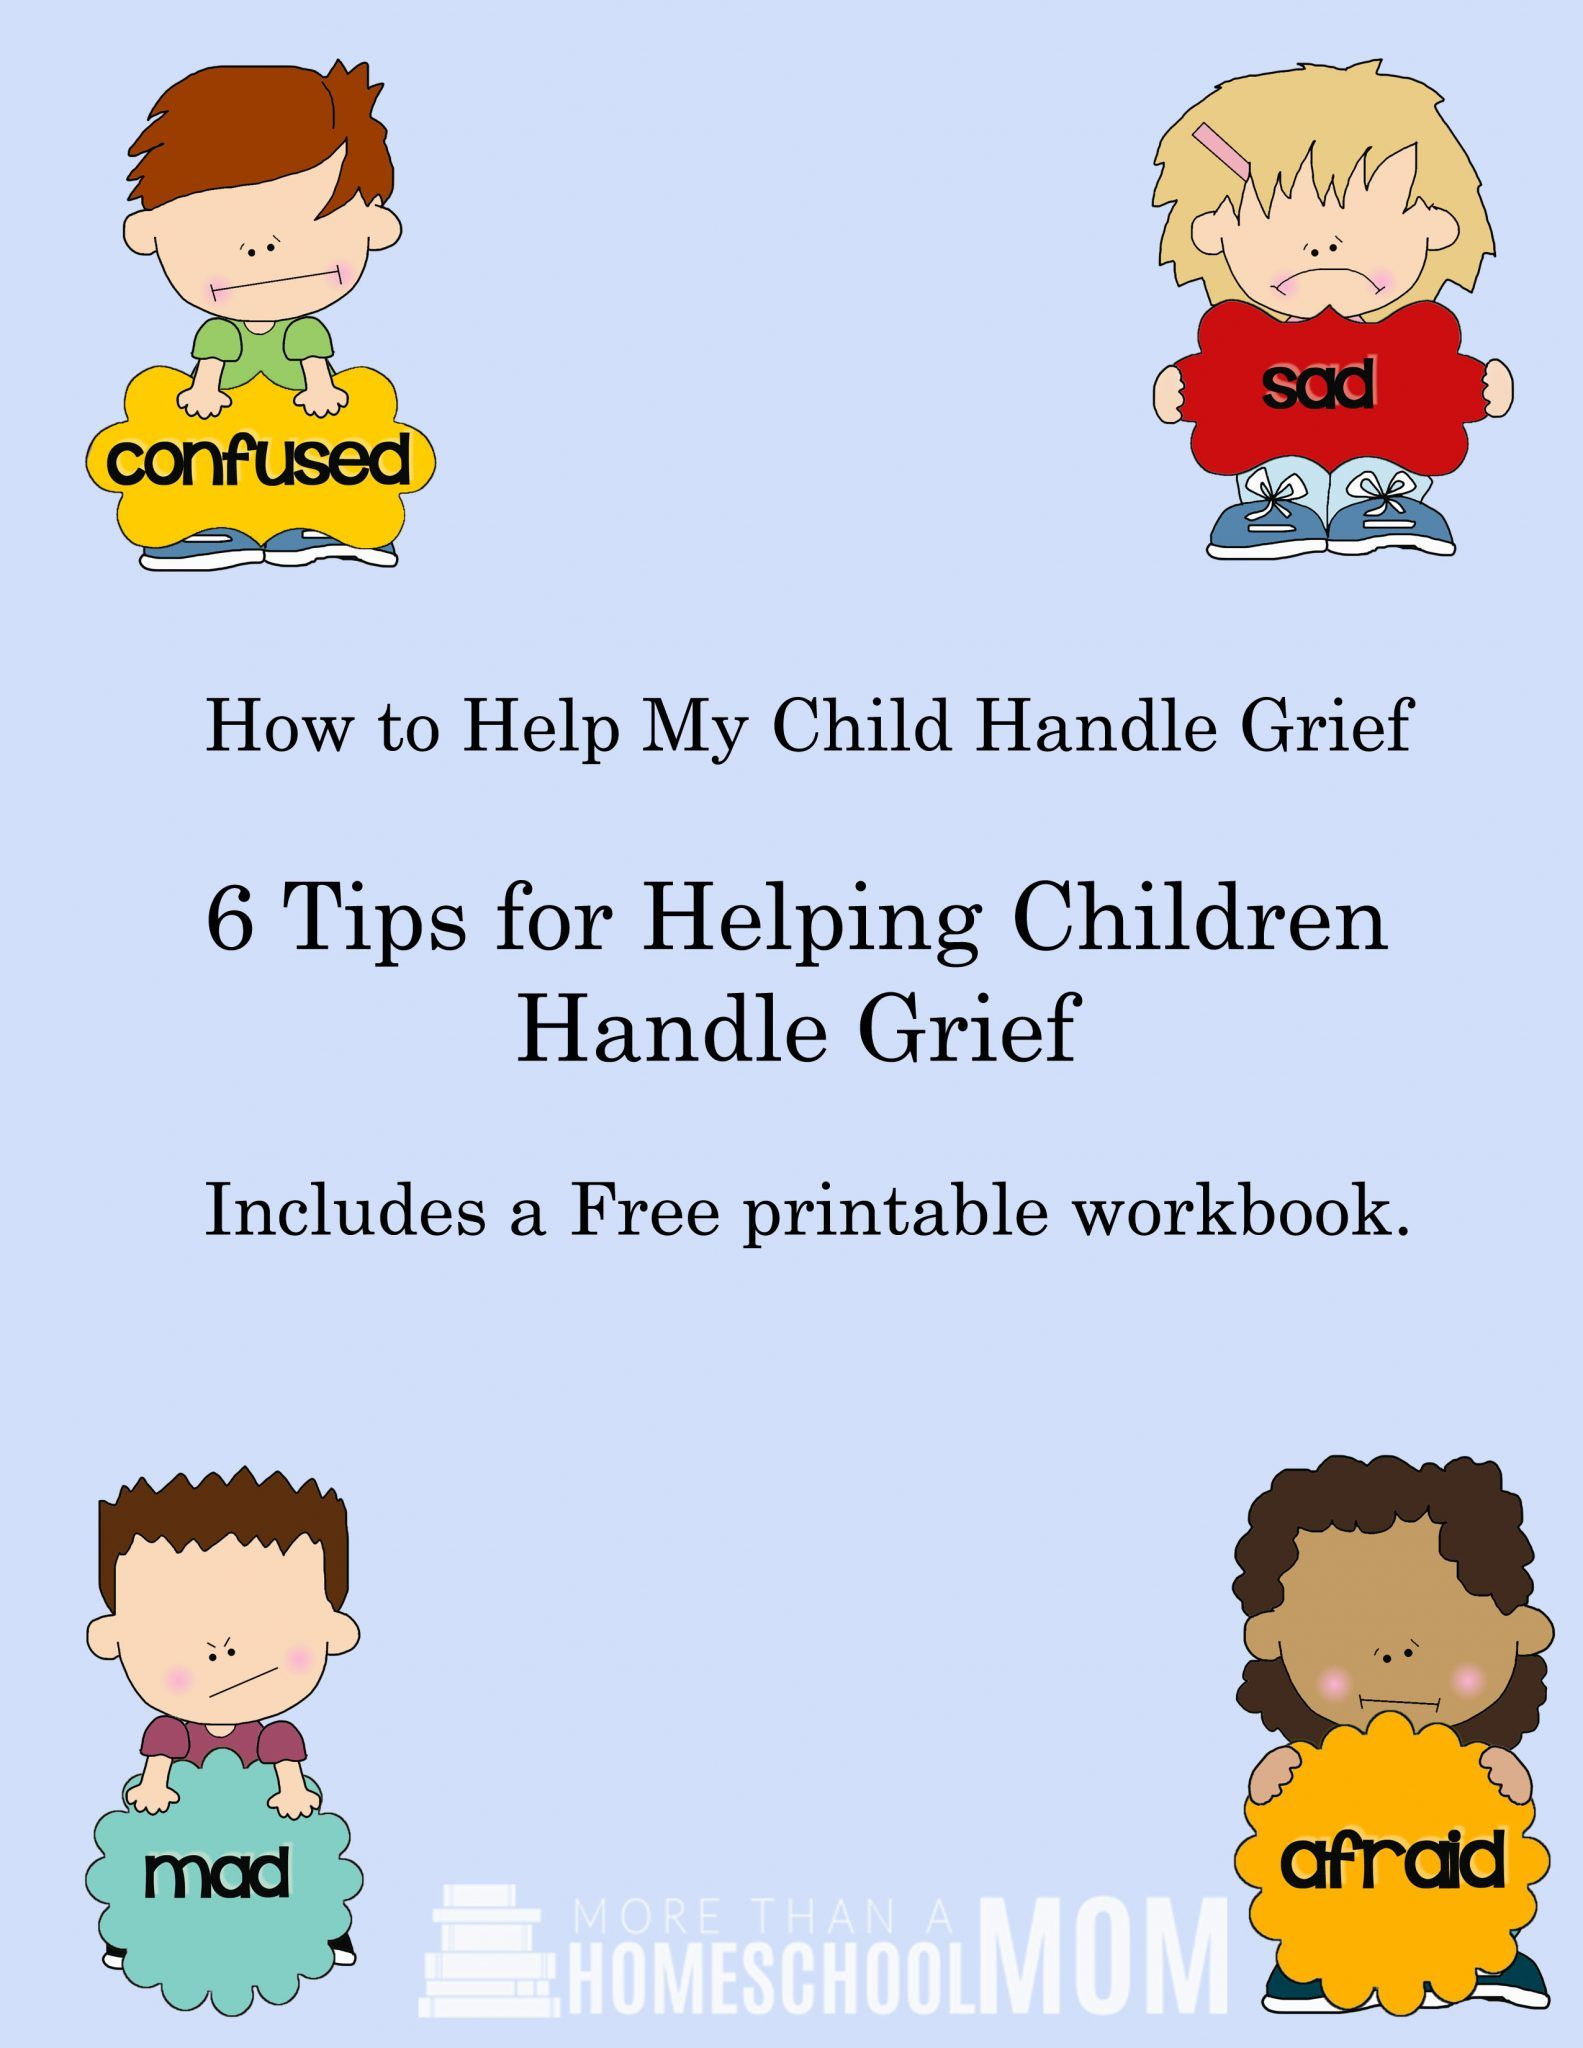 graphic regarding Printable Grief Workbook identified as How toward Assist My Kid Manage Grief - No cost Printable Grief